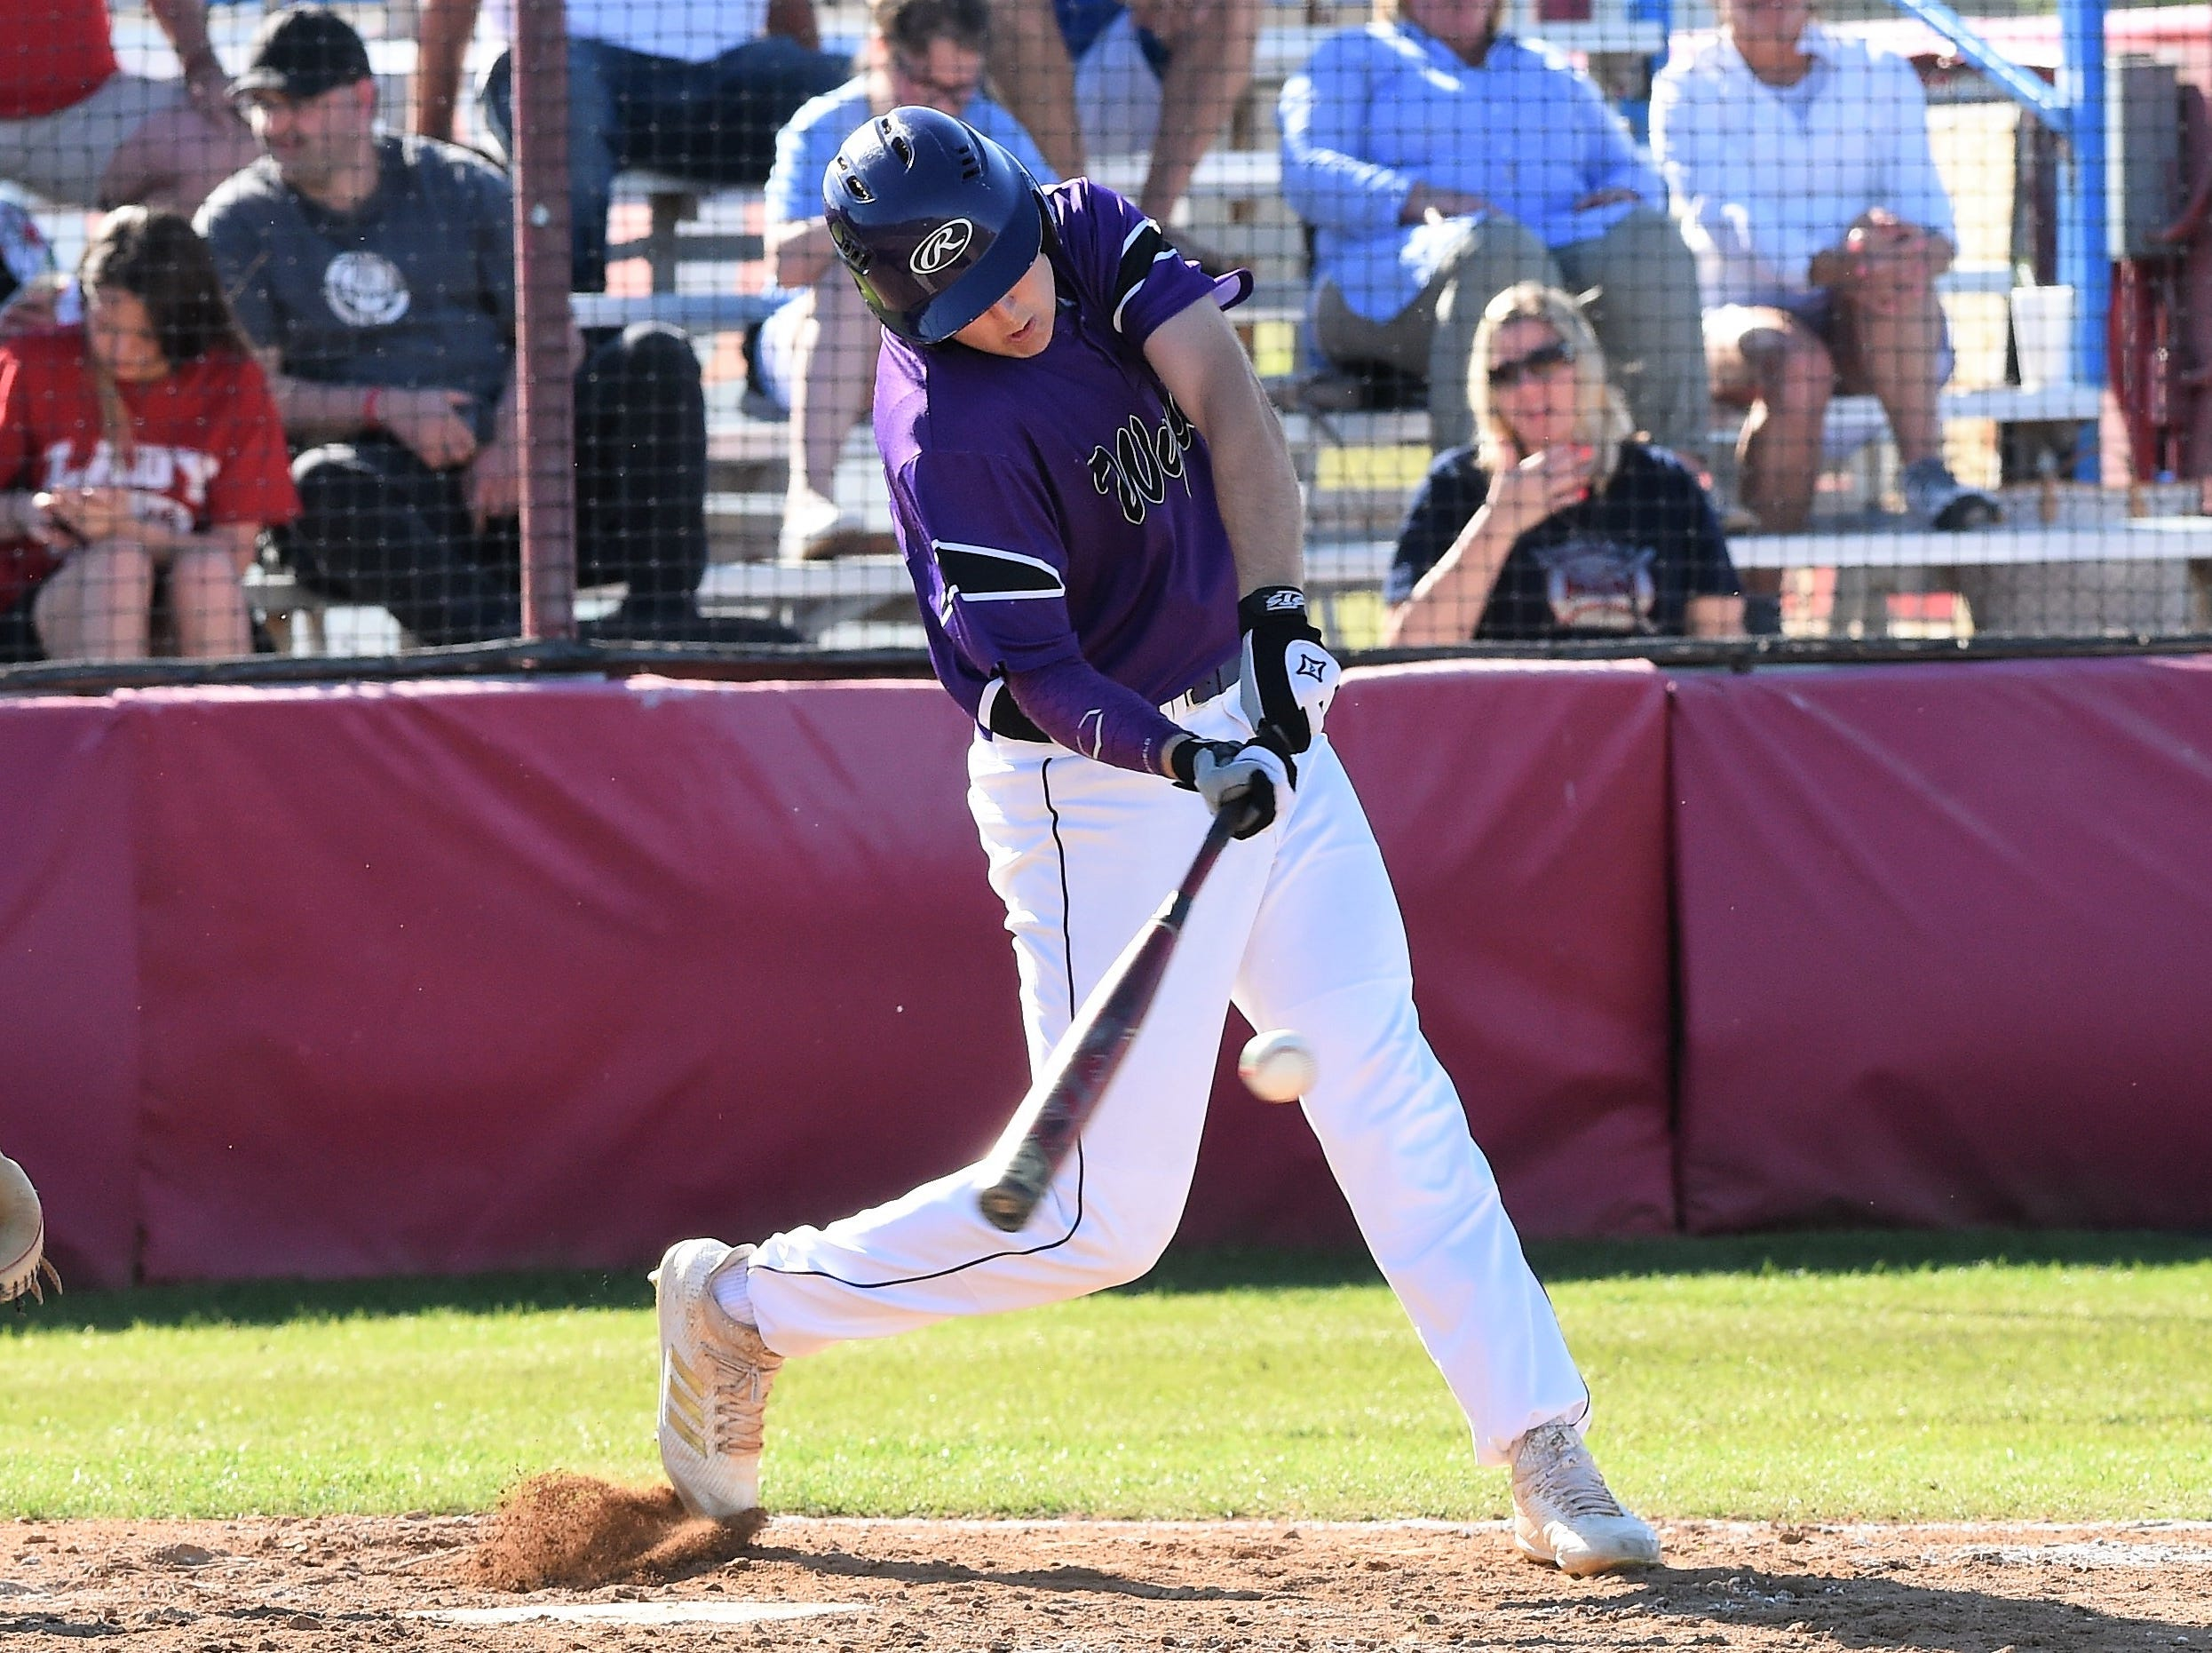 Wylie's Kanon Doby (17) turns on a pitch against Cooper at Cougar Field on Tuesday, April 9, 2019. Doby had two hits, including a double, scored and drove in a run as the Bulldogs won 11-5.